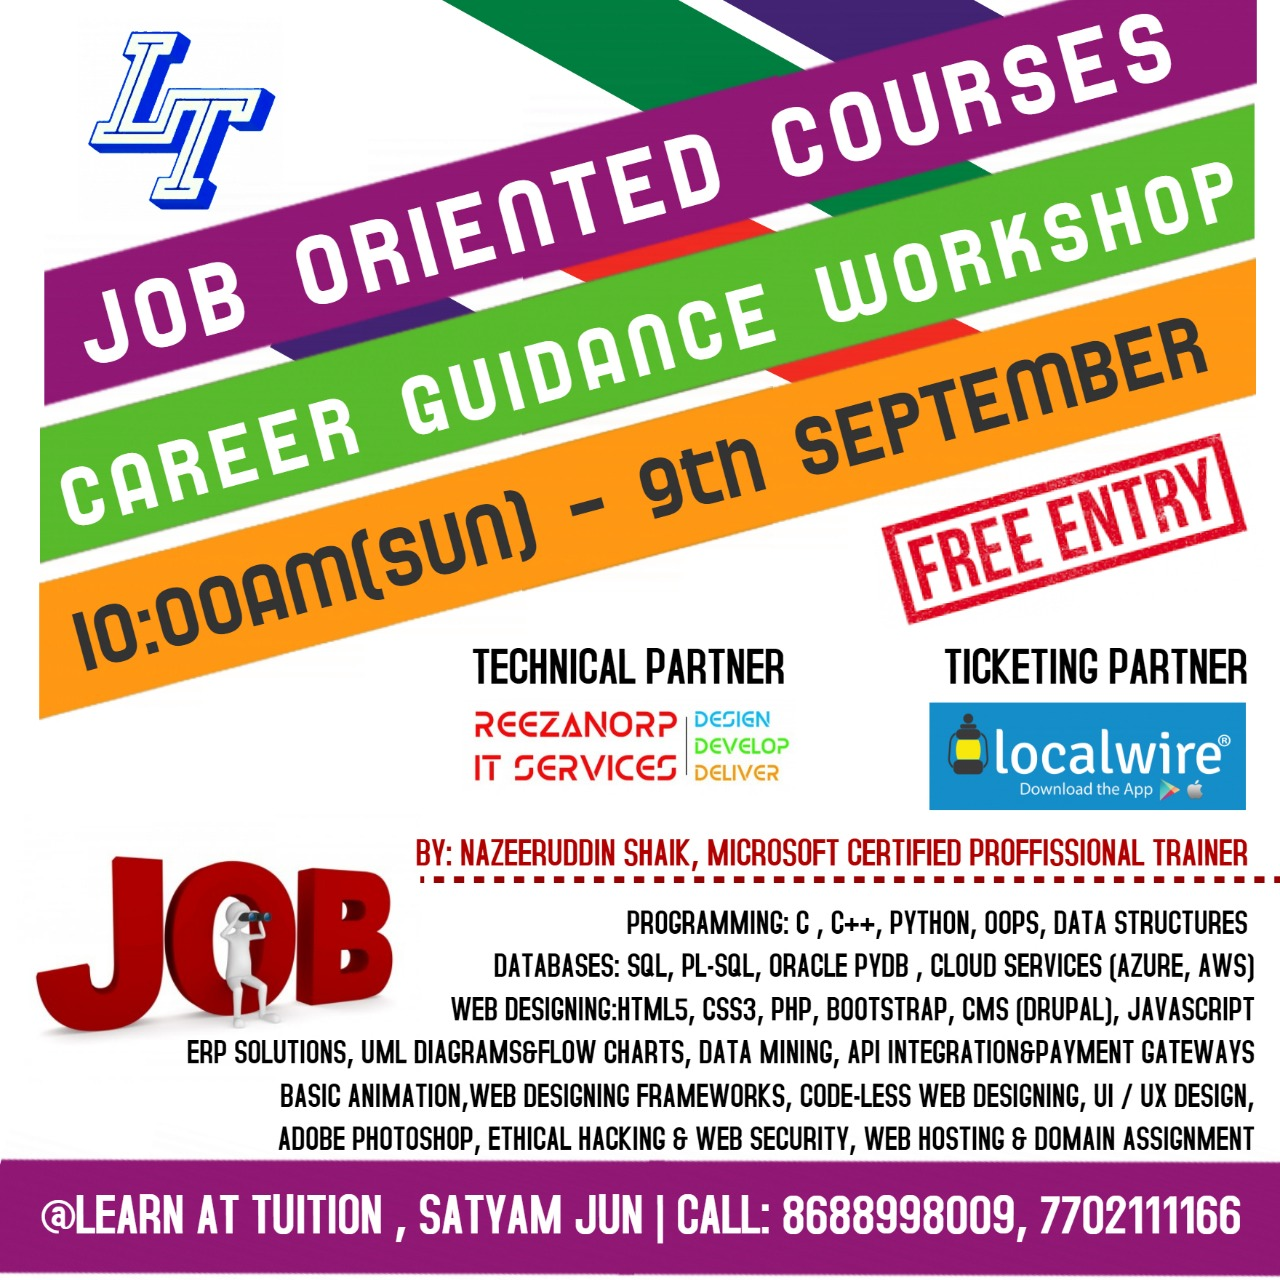 CAREER GUIDANCE WORKSHOP on JOB ORIENTED COURSES ~ Localwire